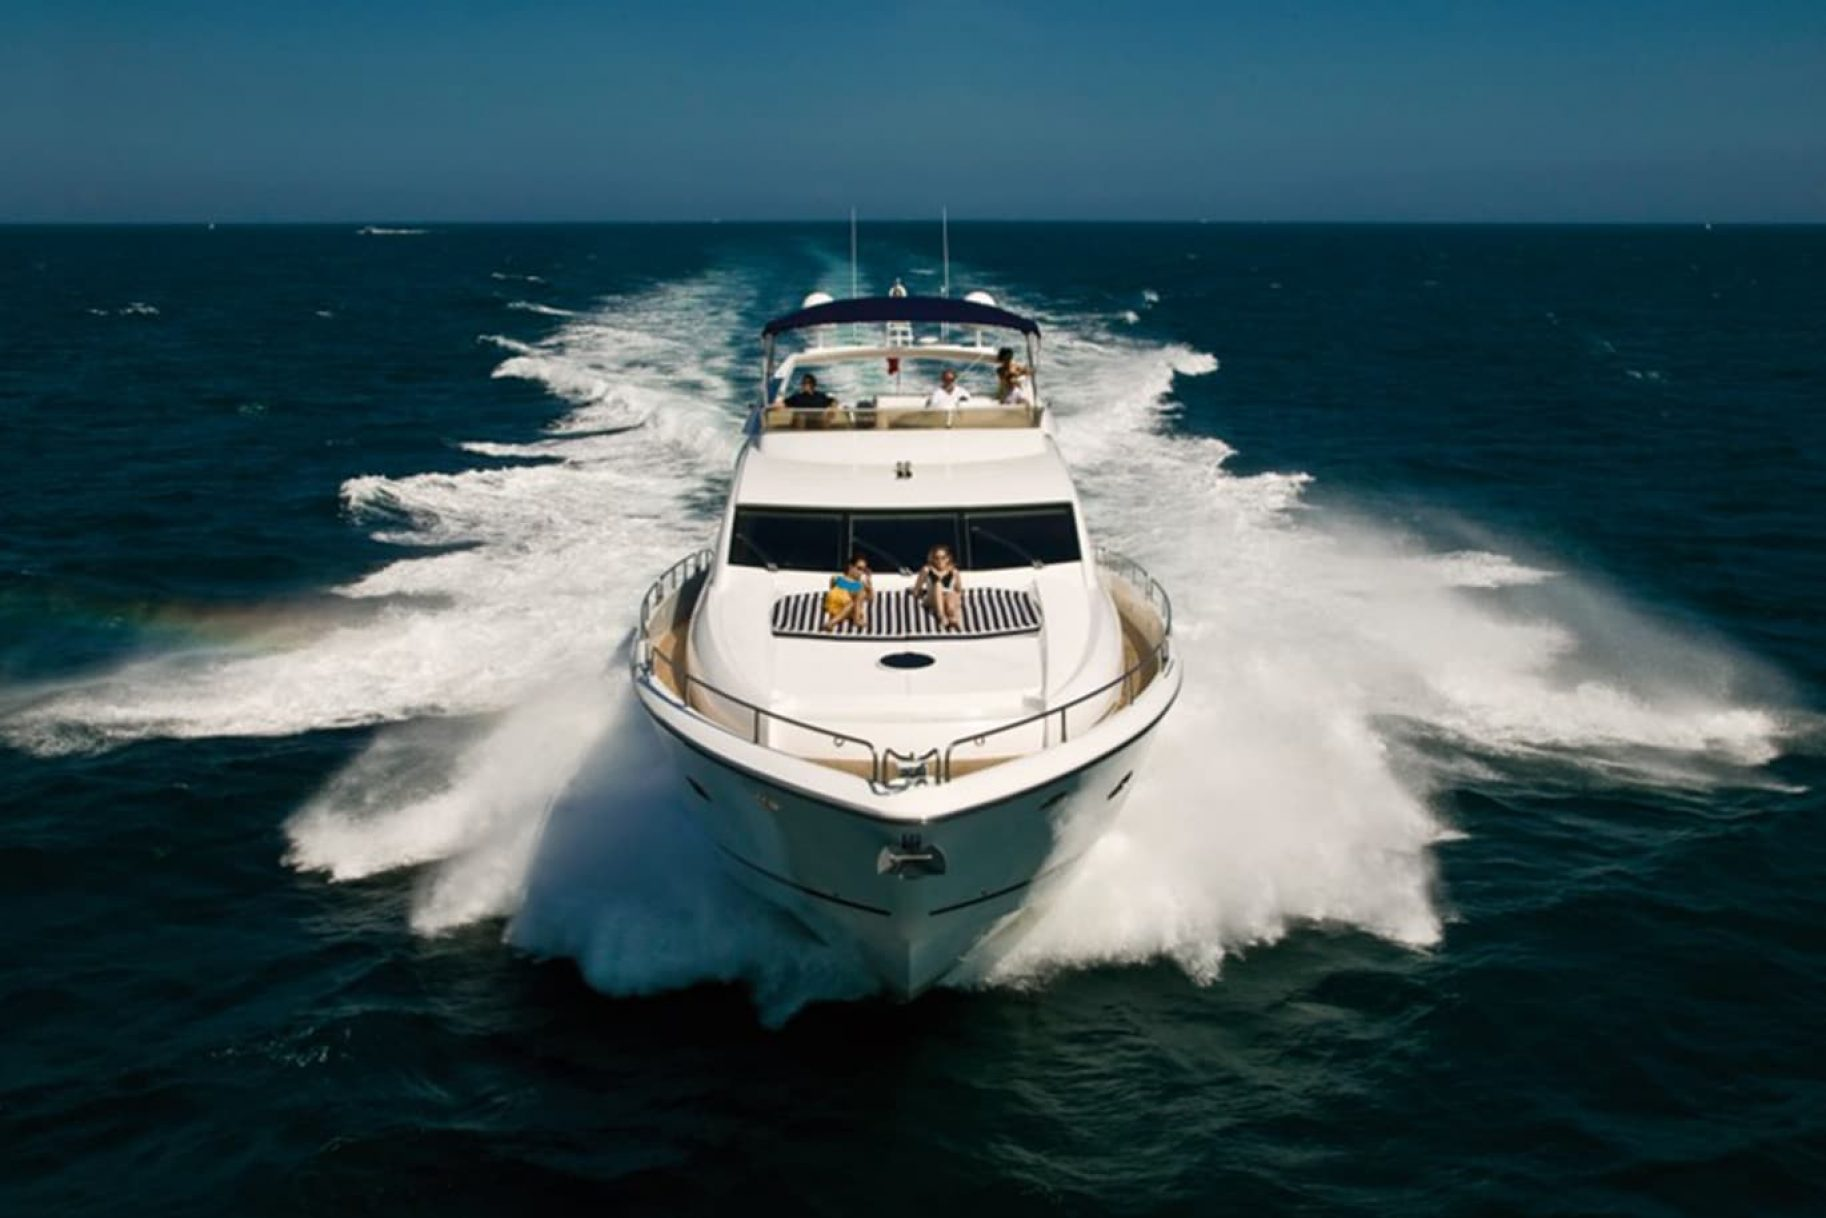 A luxury boat powers through the waves on a sunny day